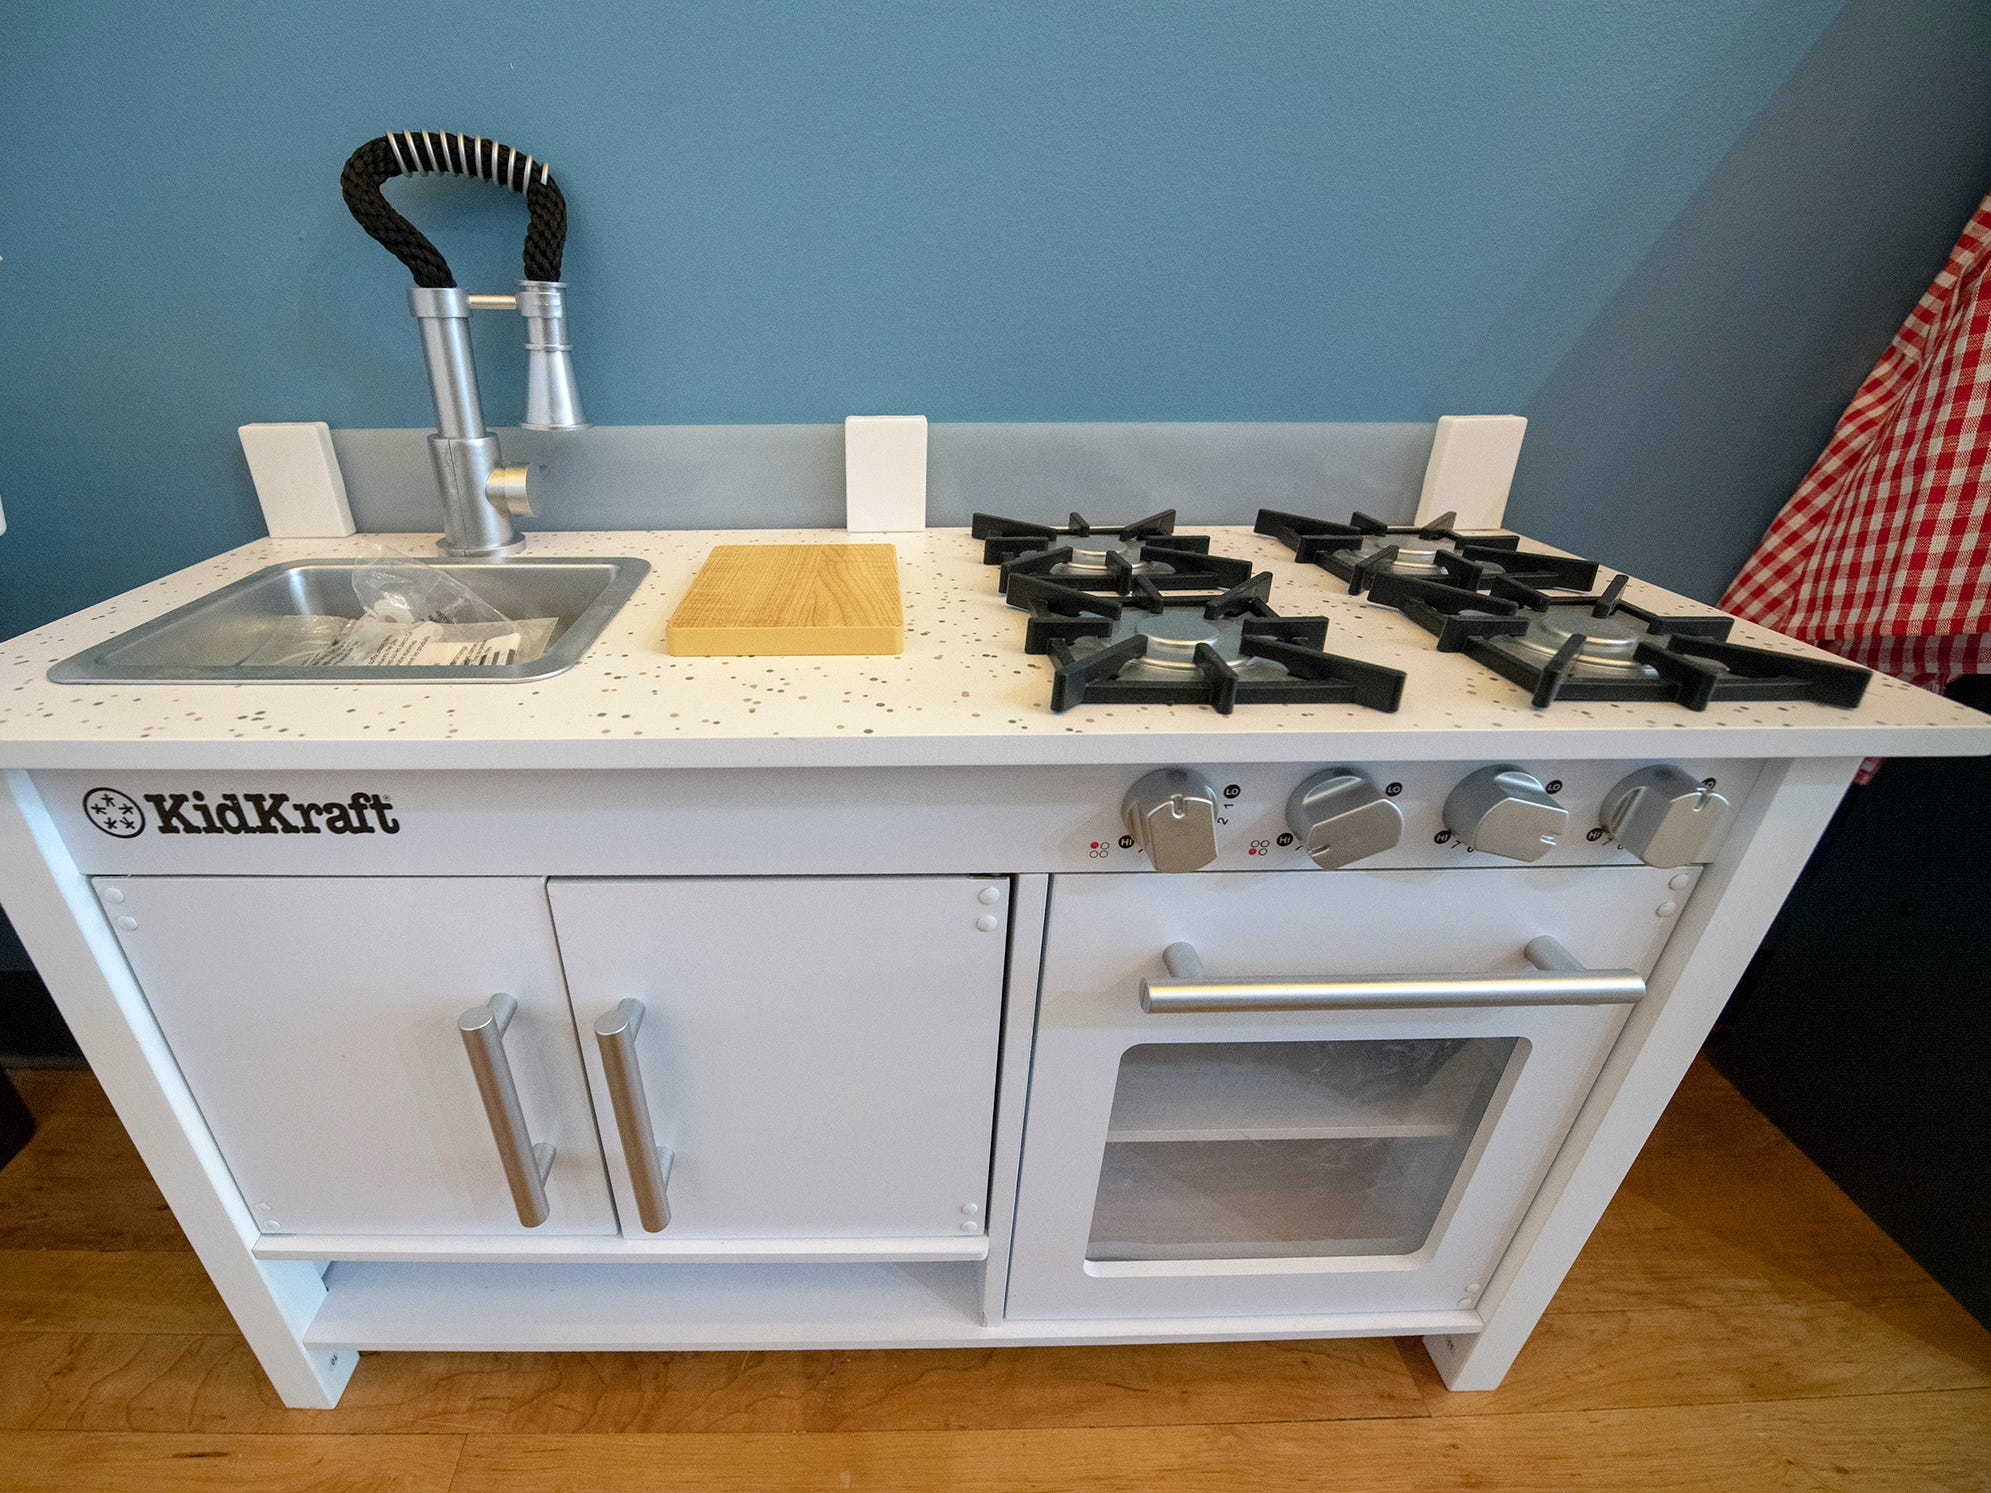 A kitchen ready for play at The Diner, one of the interactive stations for children at The Curious Little Playhouse.